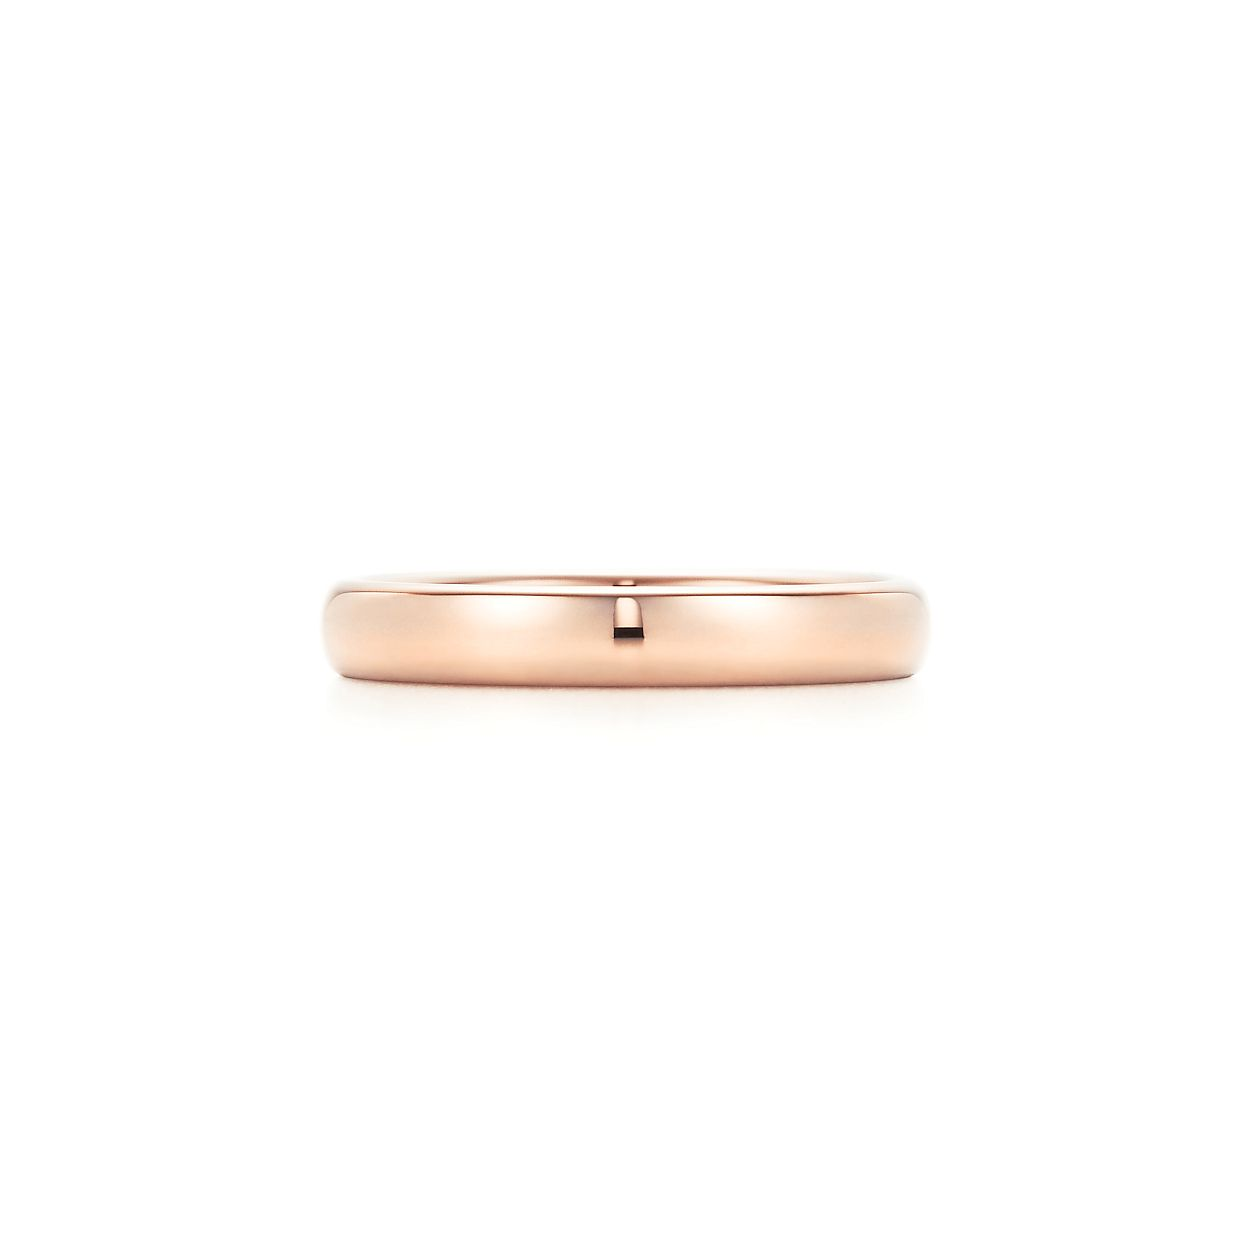 Tiffany Classic milgrain wedding band ring in 18k gold, 3 mm wide - Size 5 1/2 Tiffany & Co.